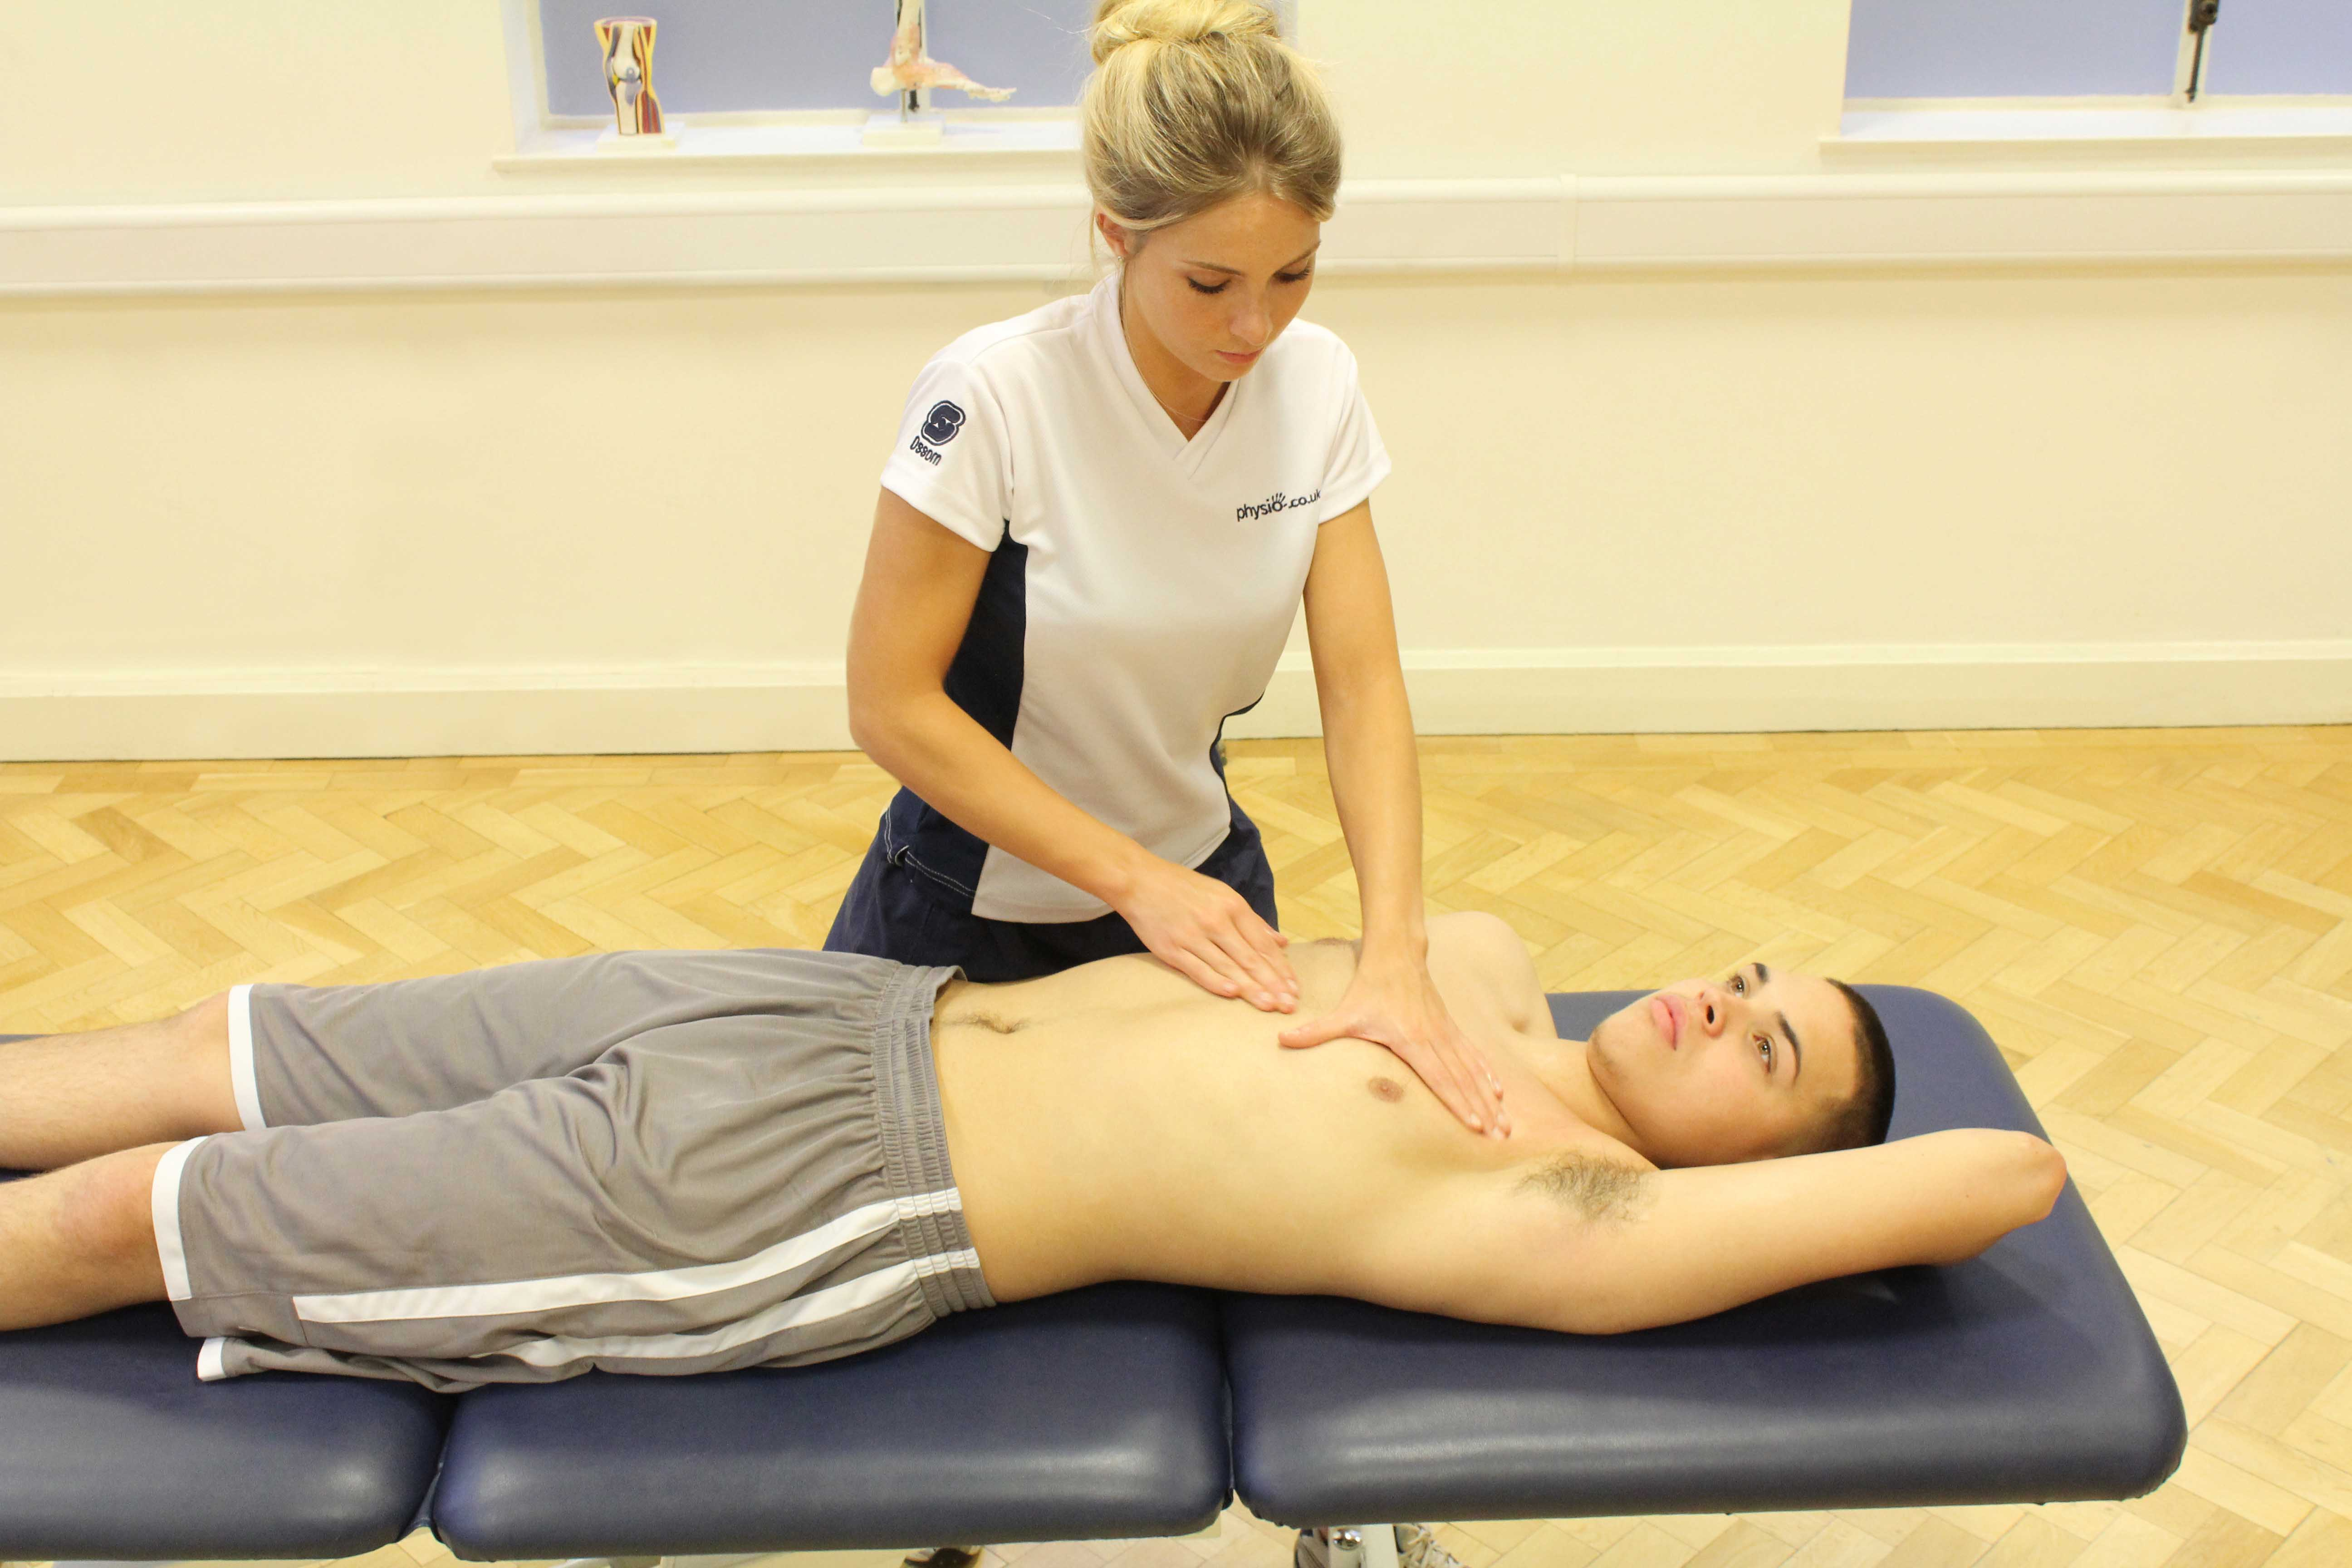 Soft tissue massage of the bicep muscle by a specialist physiotherapist